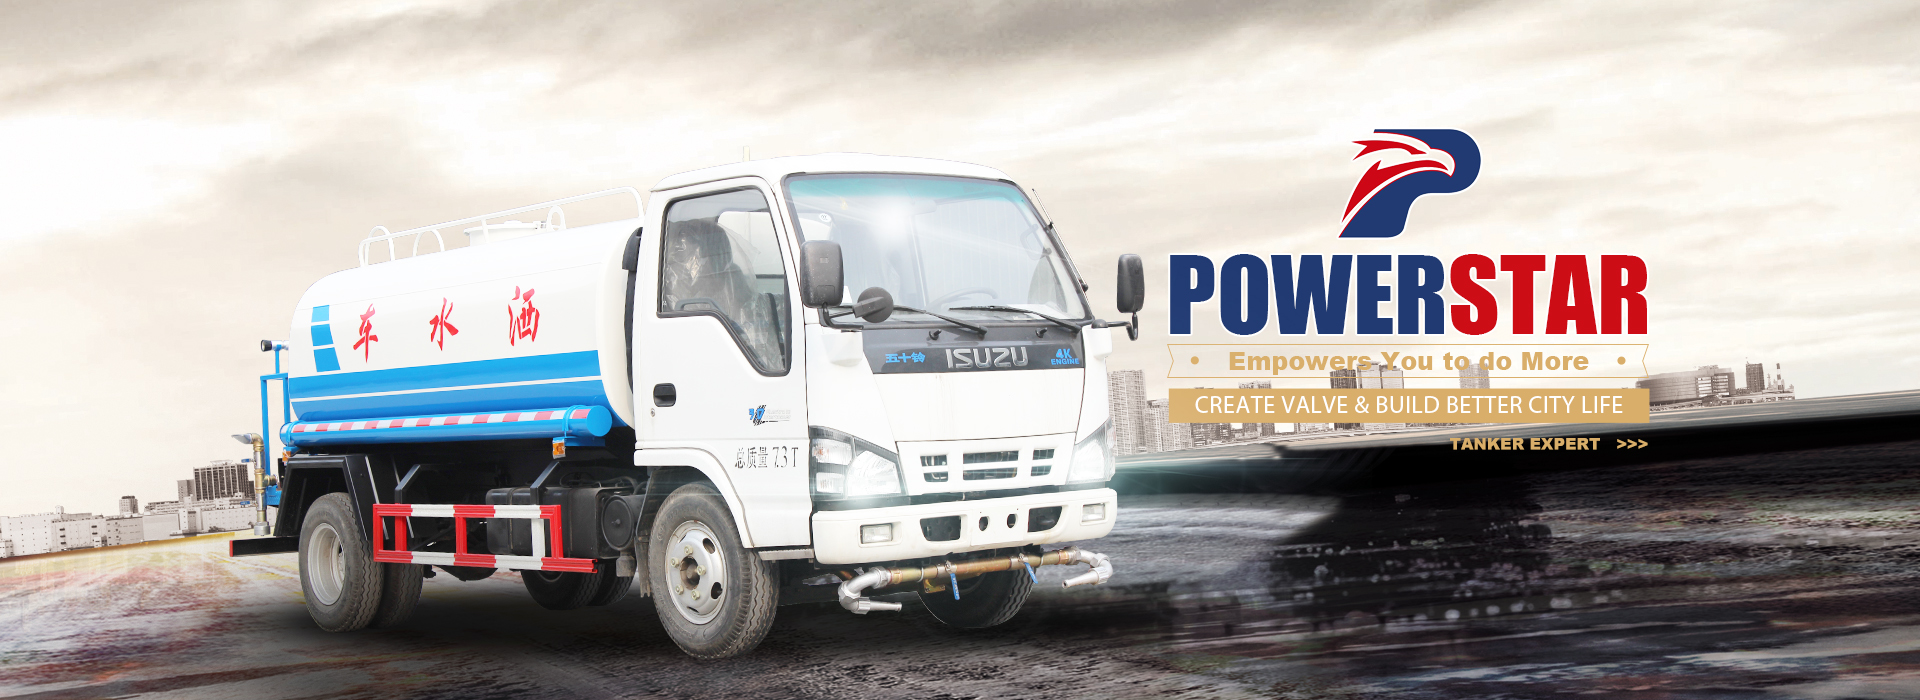 Isuzu water tank trucks supplier Powerstar trucks